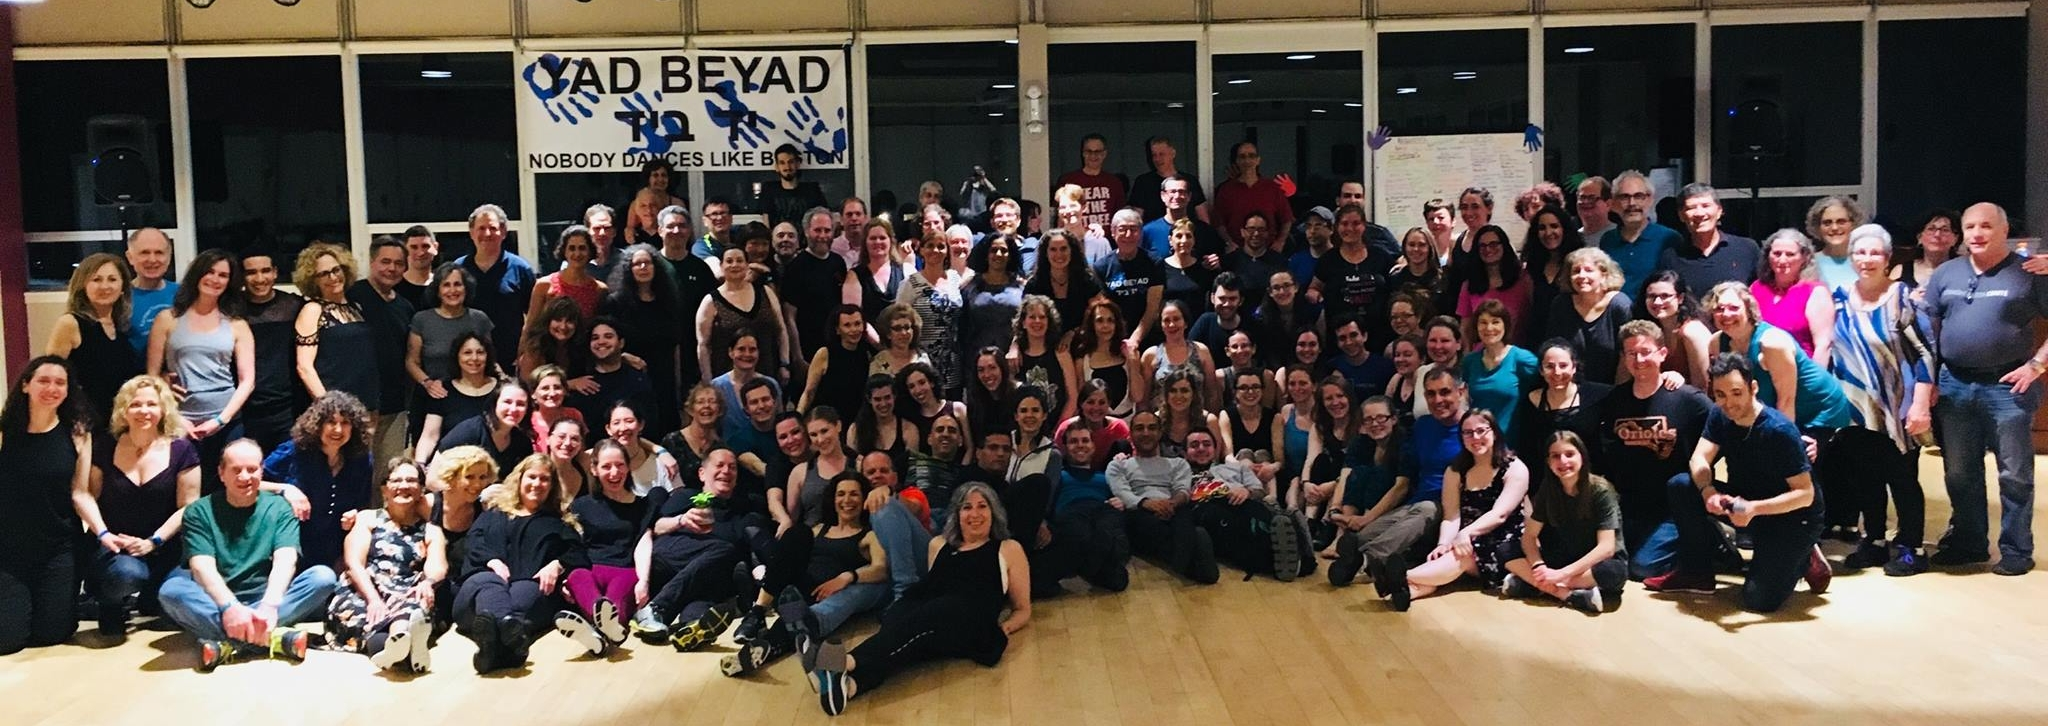 Yad Beyad Boston 2017 Survivors!